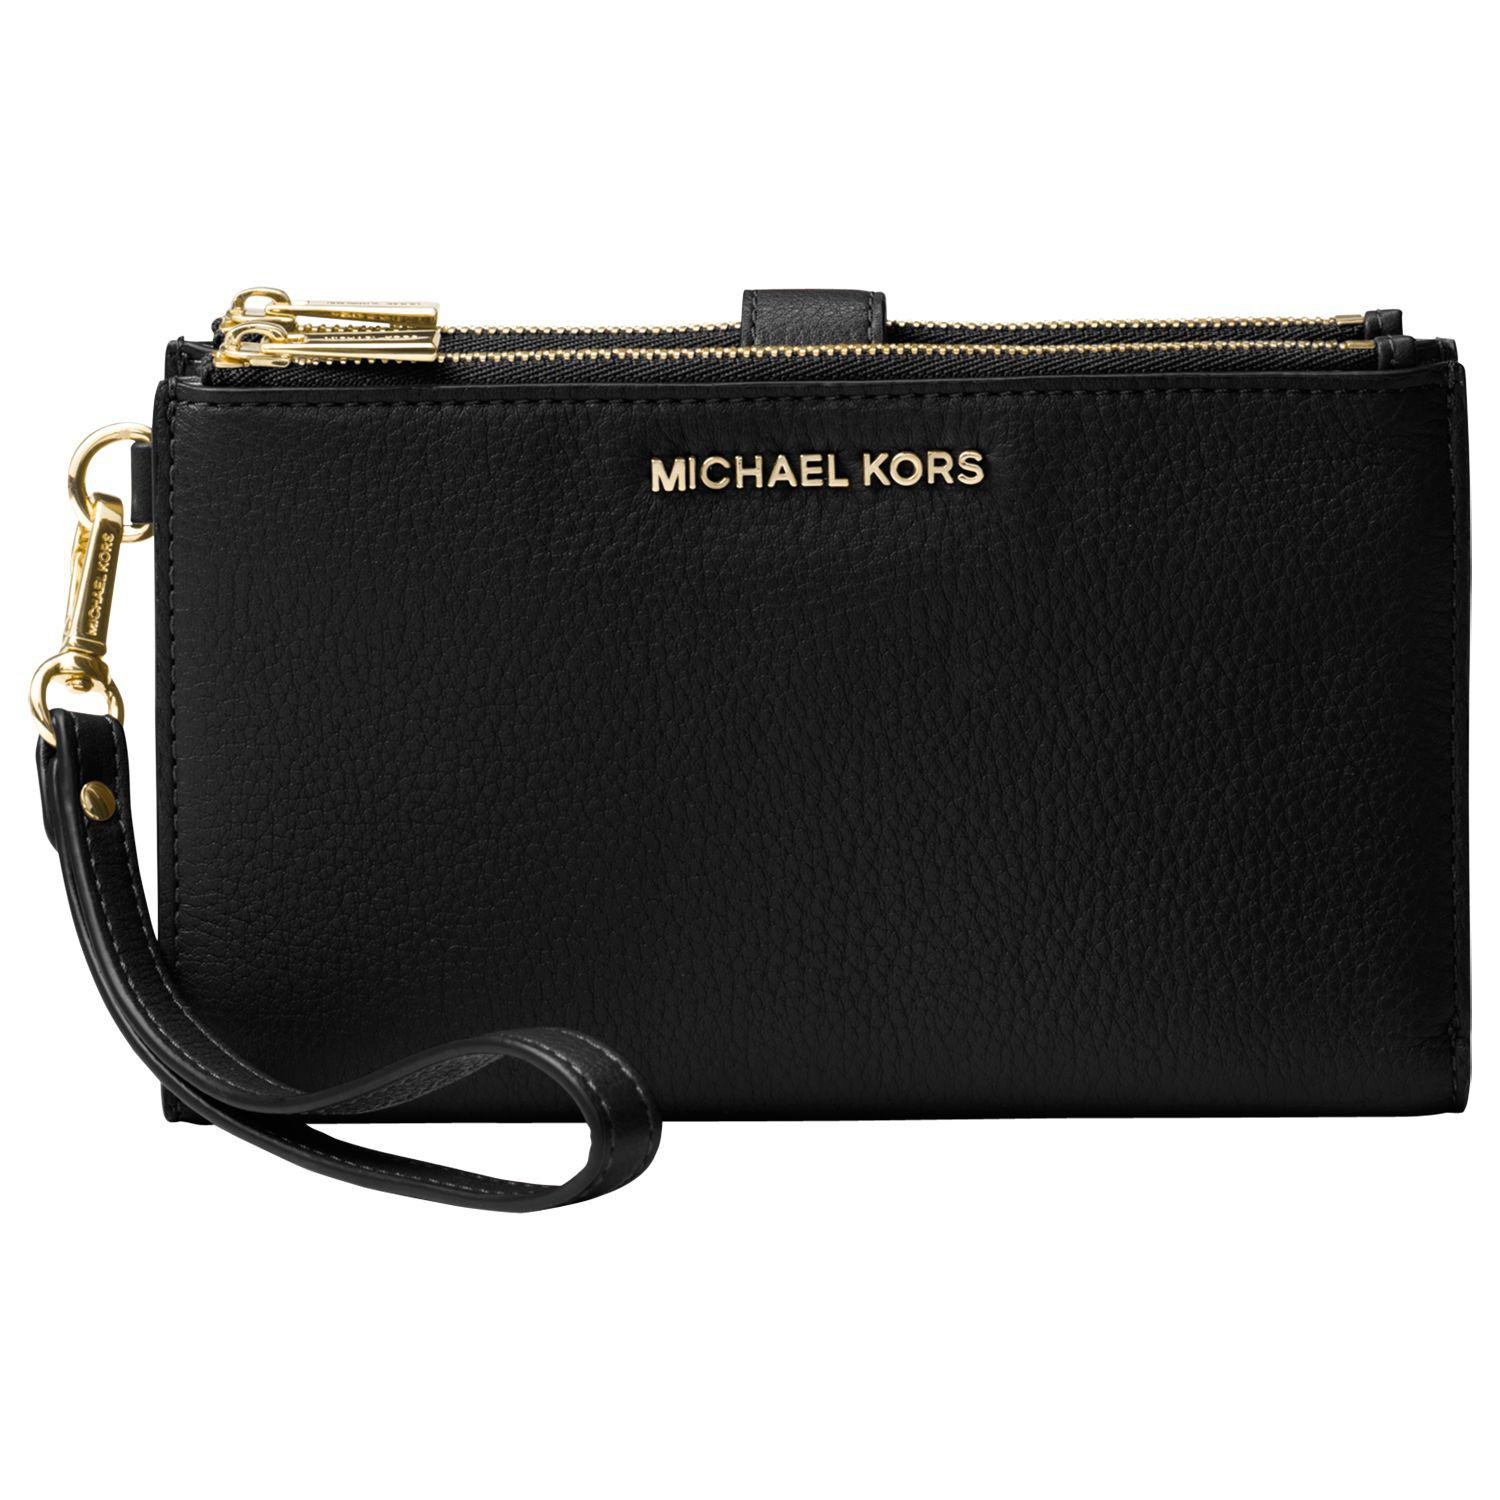 3f7b7eecb2218 Michael Kors - Black Michael Pouches   Clutches Leather Wristlet Purse -  Lyst. View fullscreen